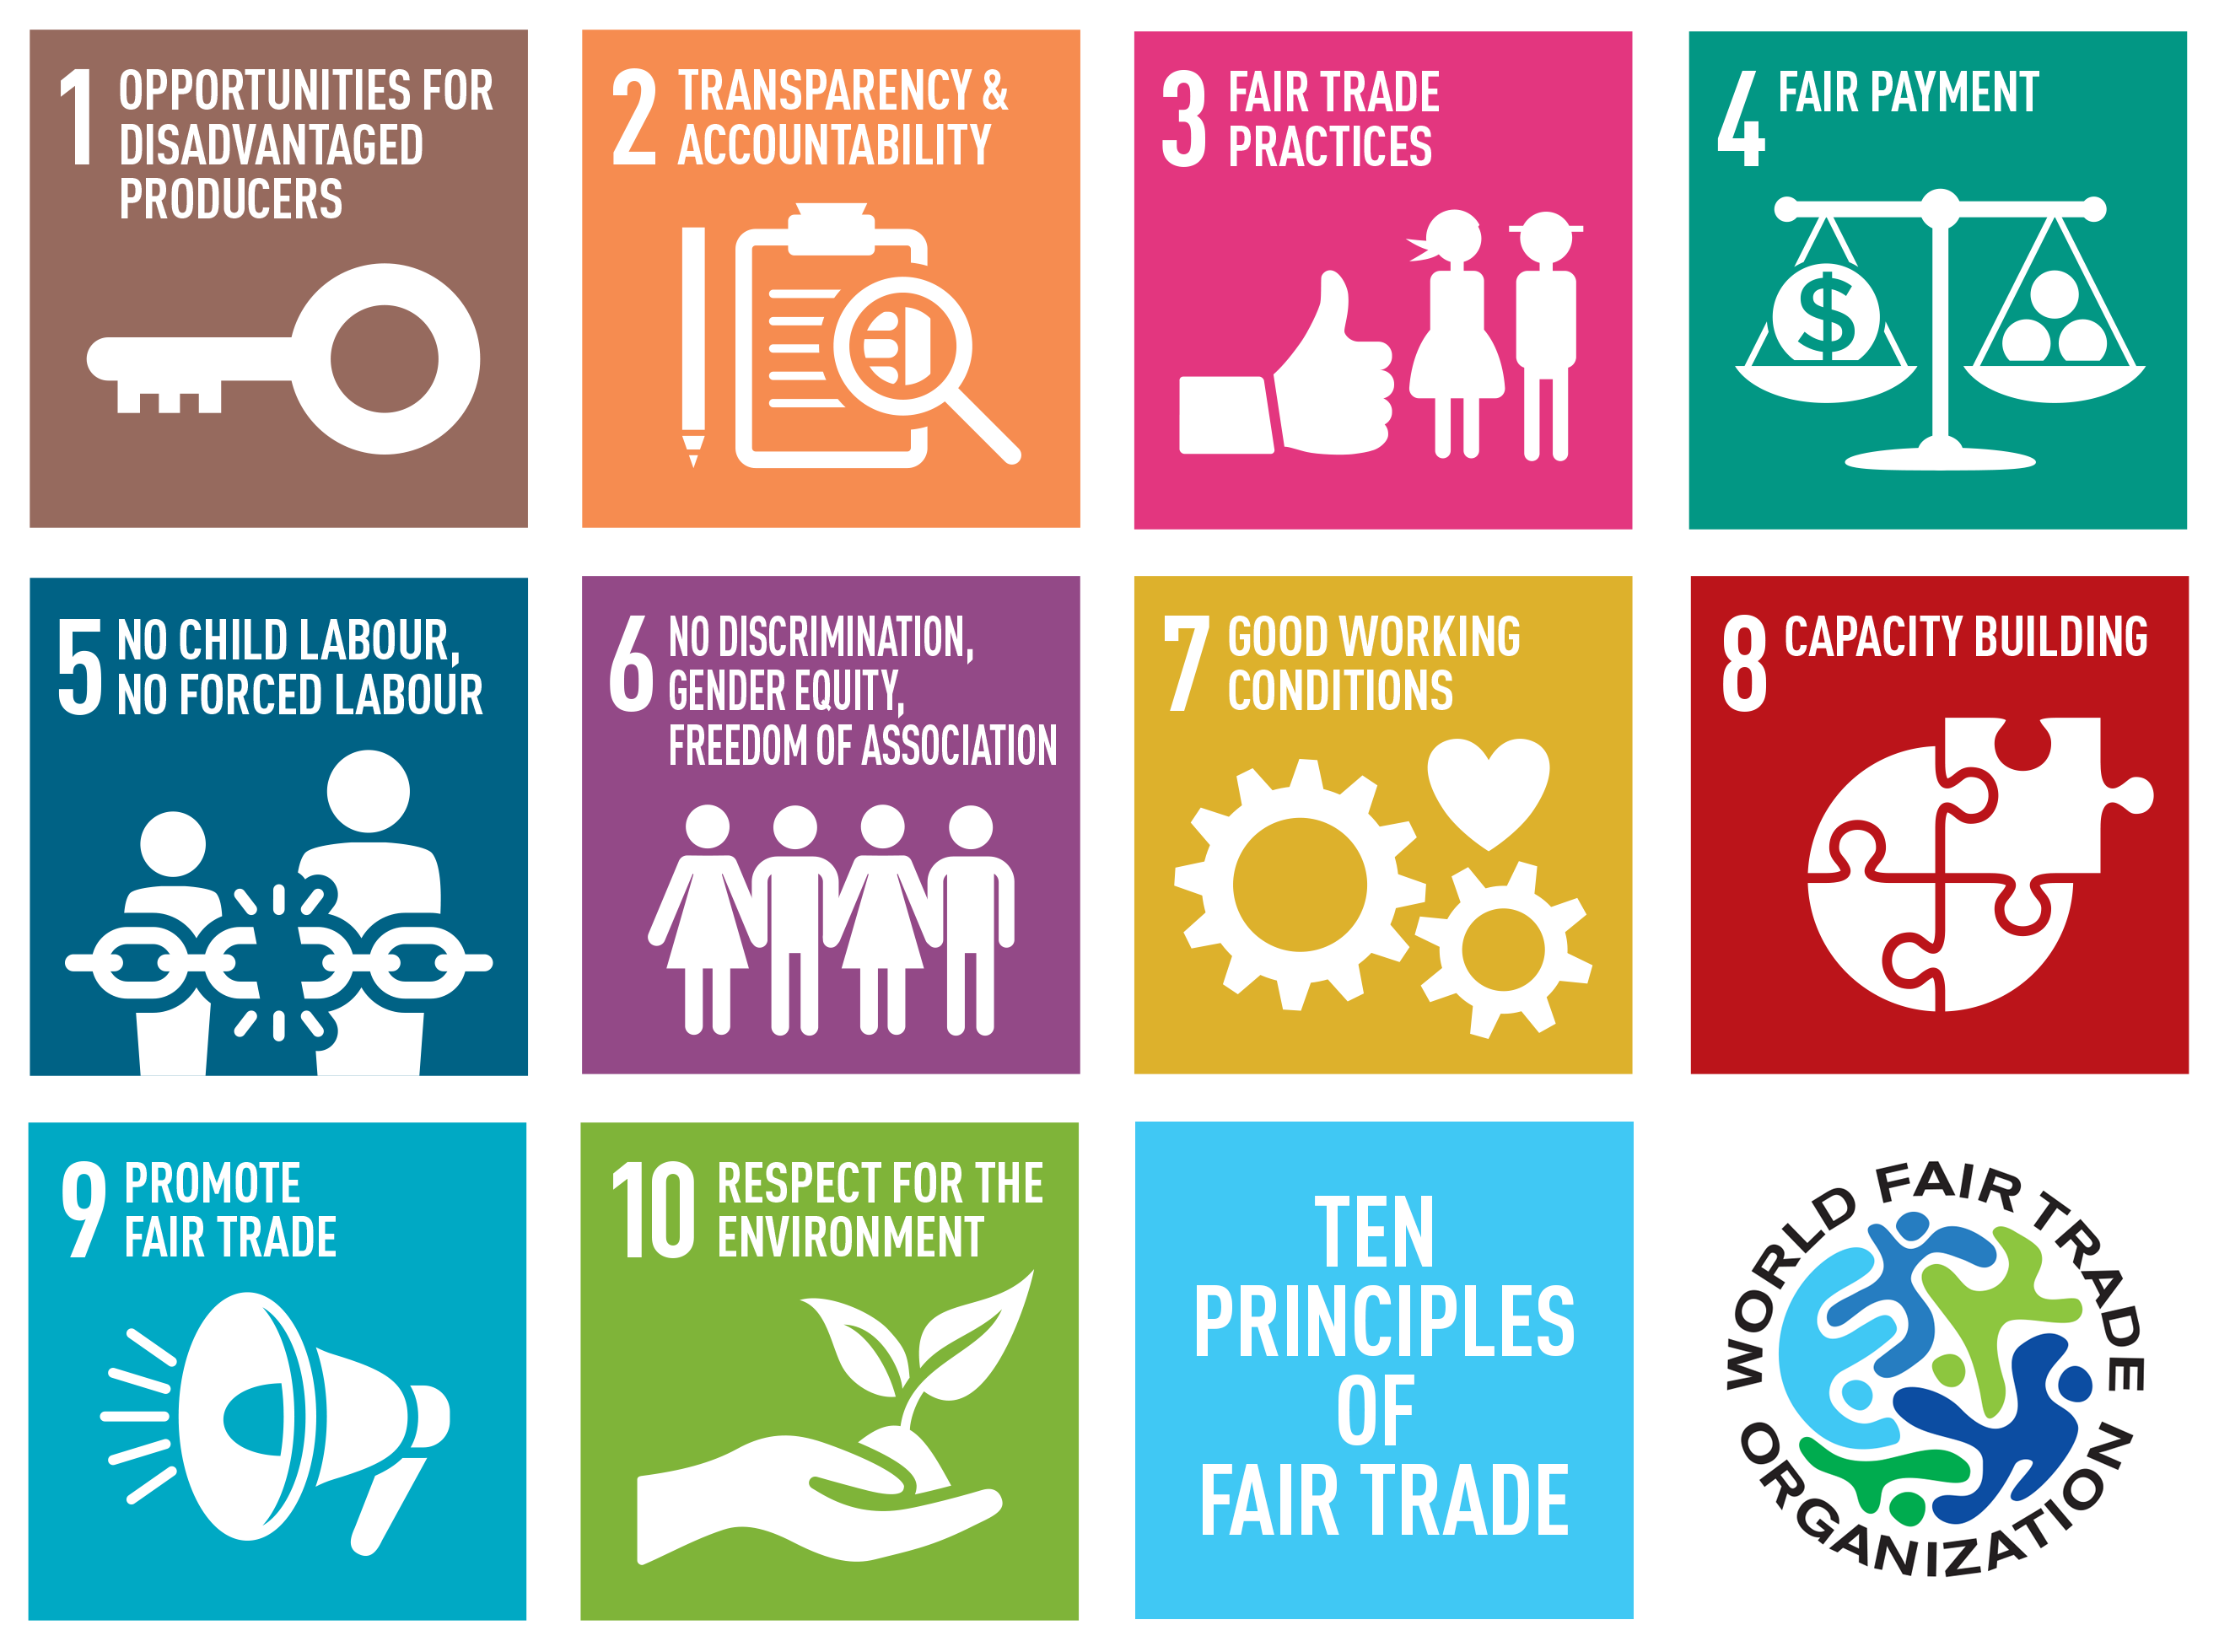 10 PRINCIPLES OF FAIR TRADE - Principle Of Initiative In Management PNG